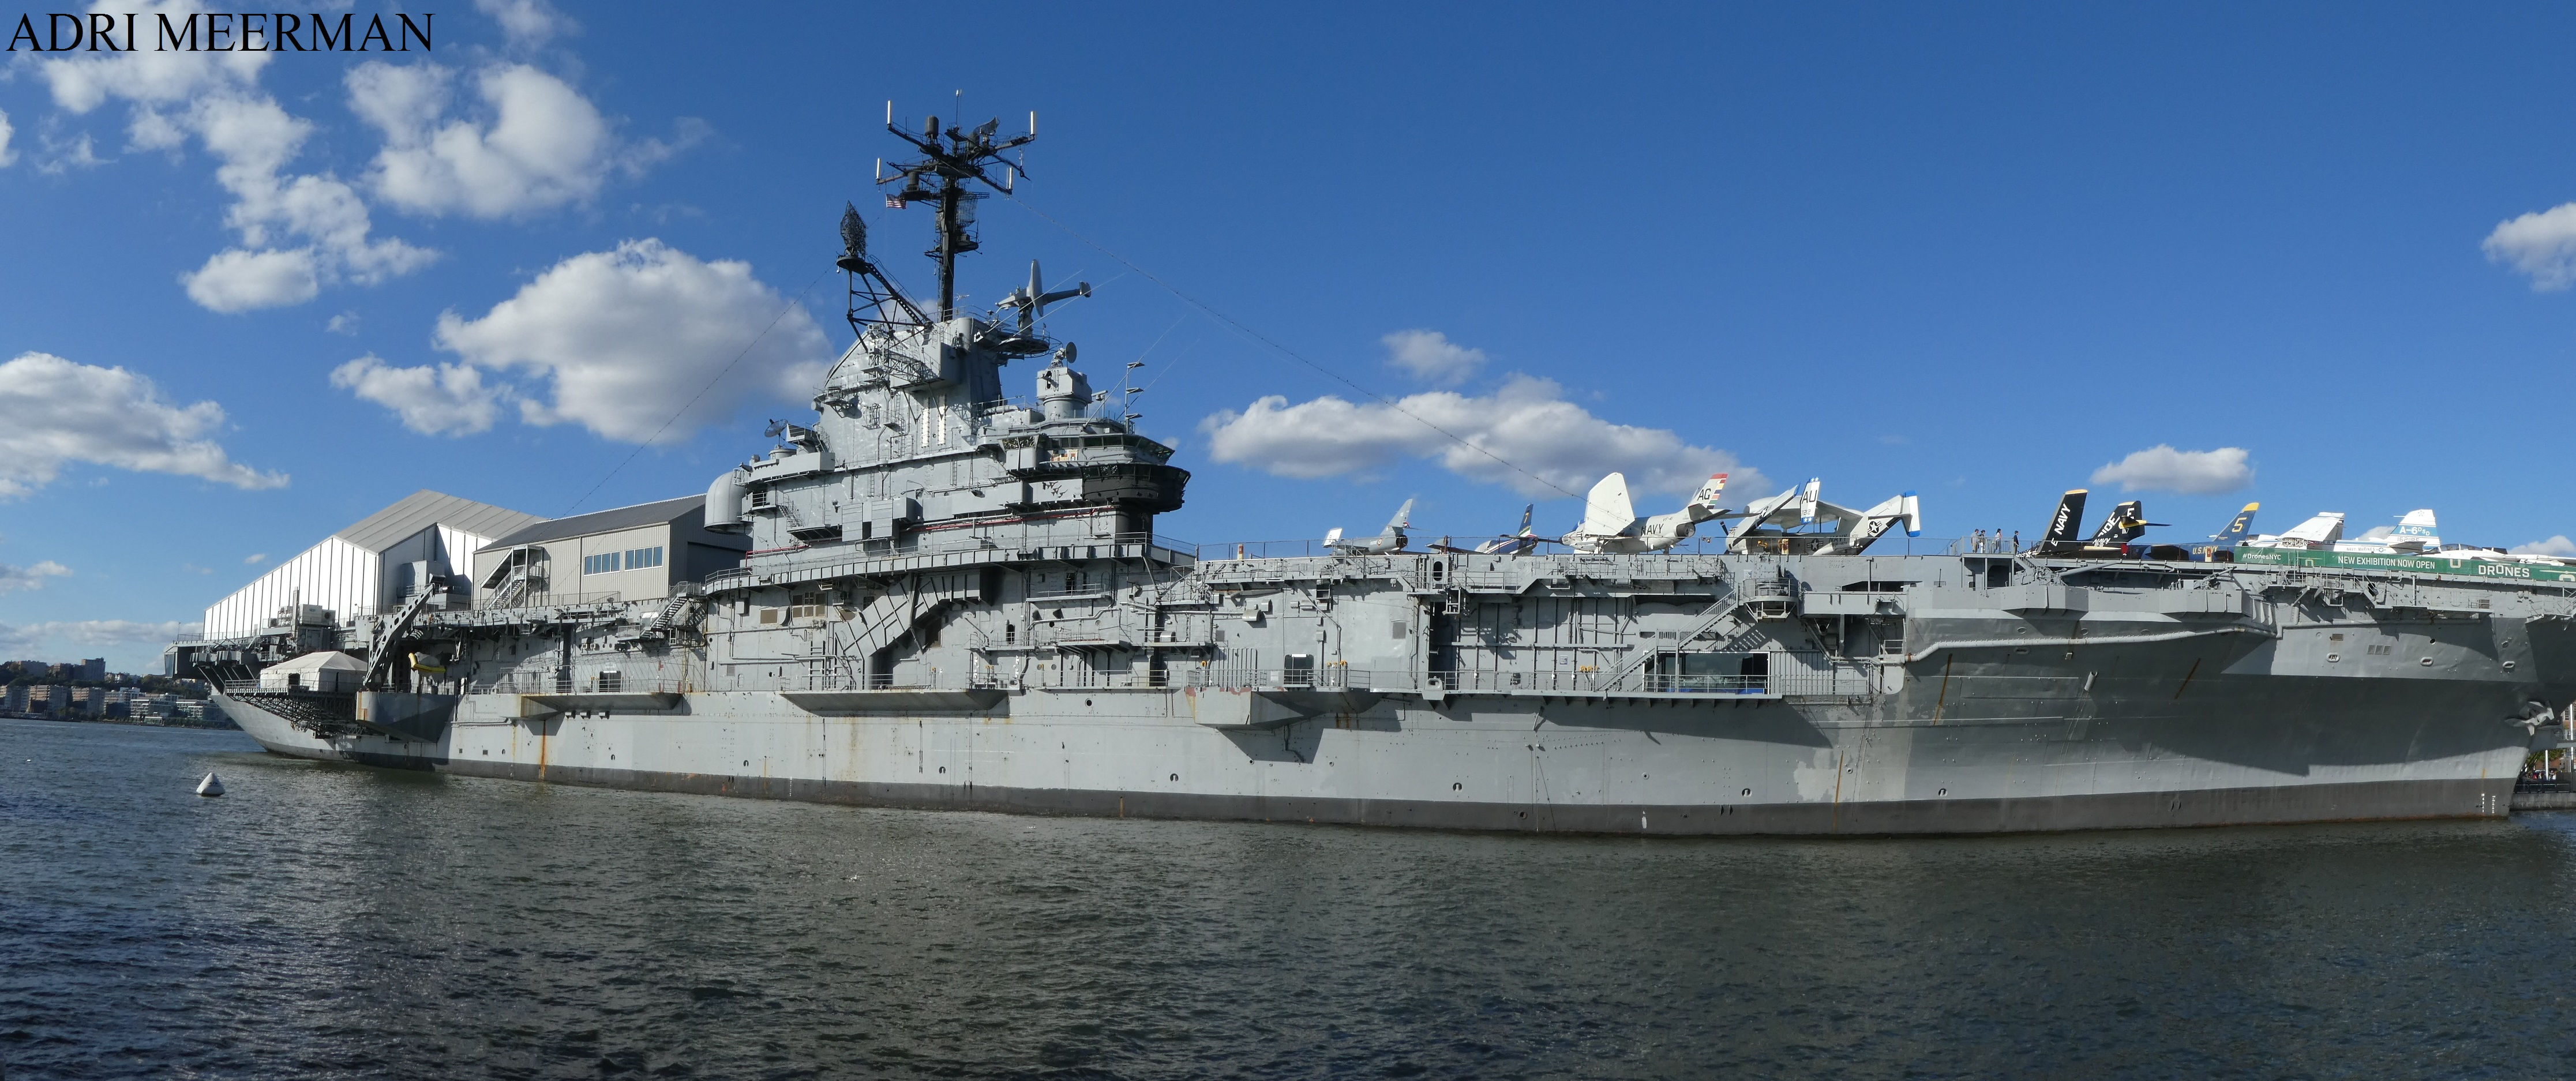 Le Meilleur Warshipsresearch American Aircraft Carrier Uss Intrepid 1941 Ce Mois Ci